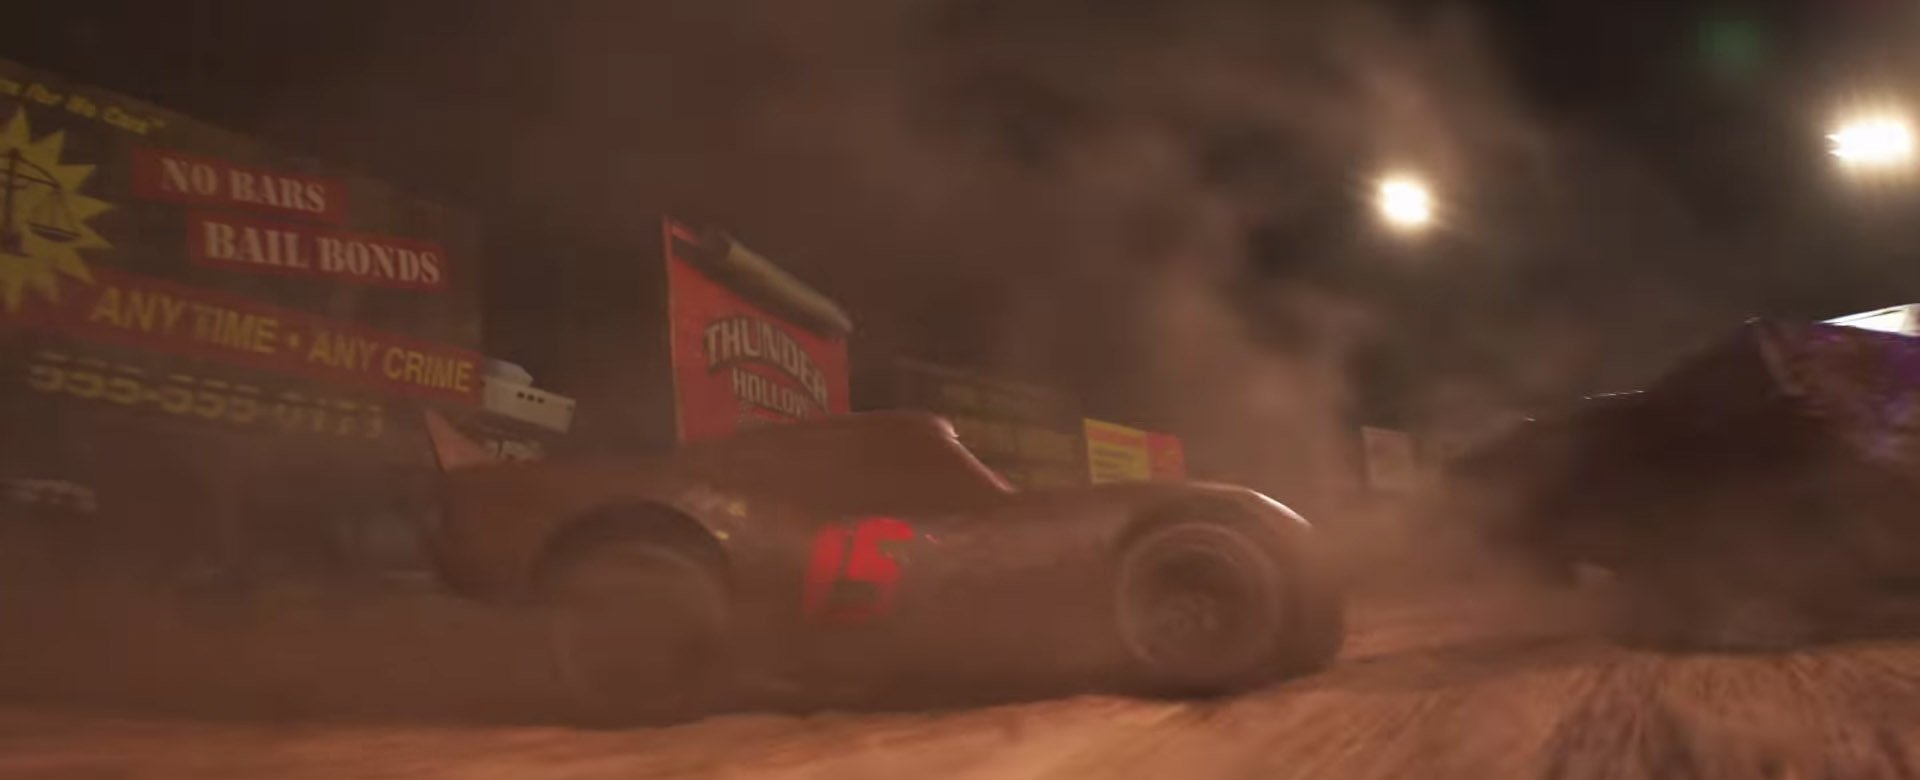 Cars Dirt Racing Highlighted In Extended Trailer Racing News